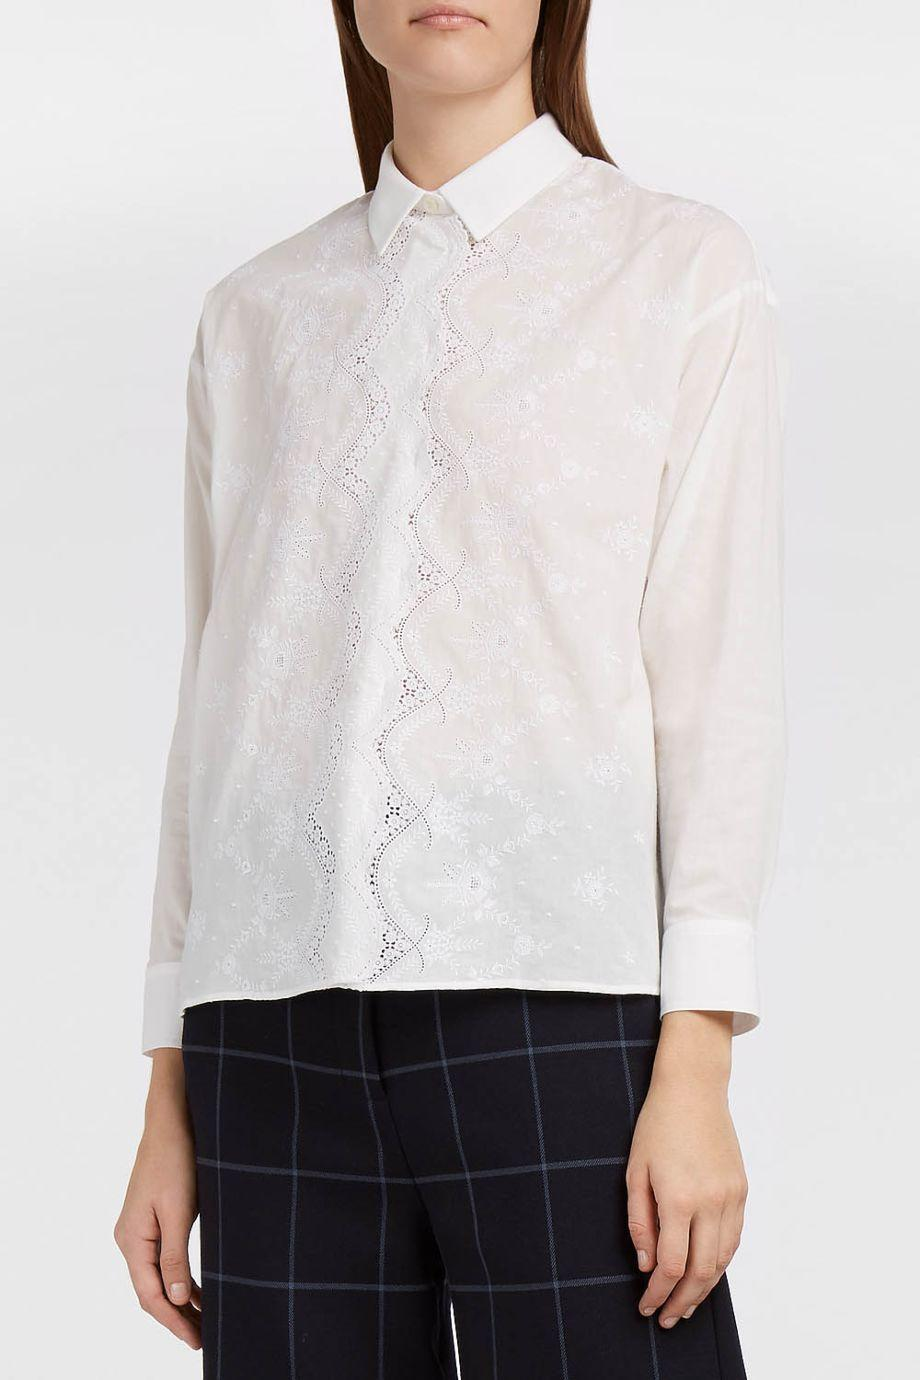 Paul & Joe Sister Marigny Cotton-Blend Broderie Anglaise Shirt